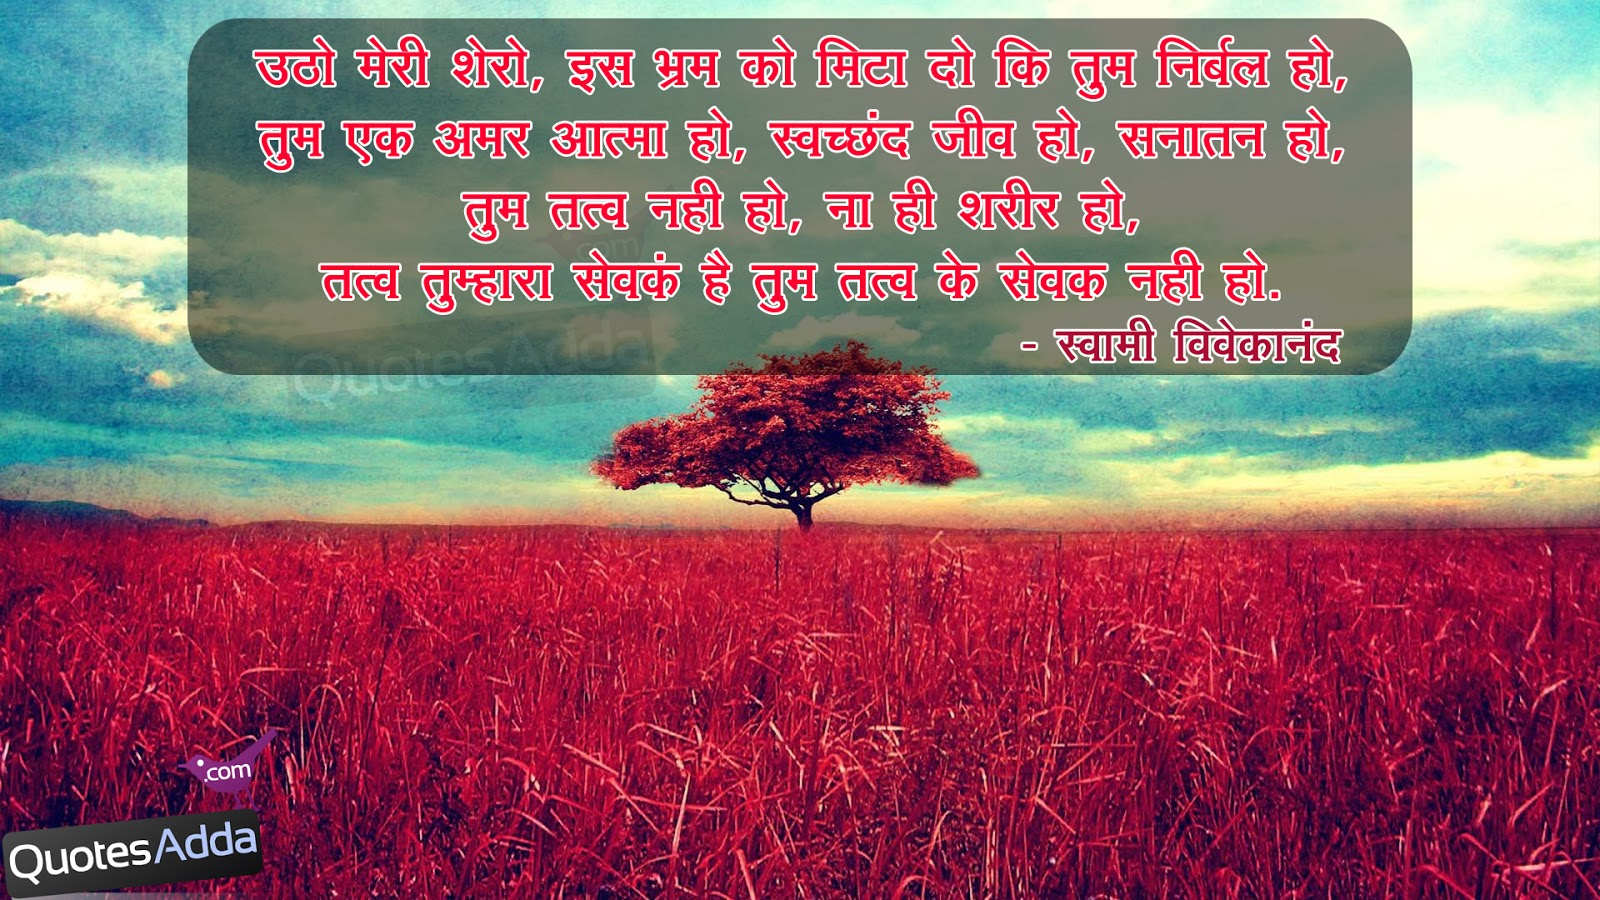 Download Hindi Bible Words Wallpapers Gallery